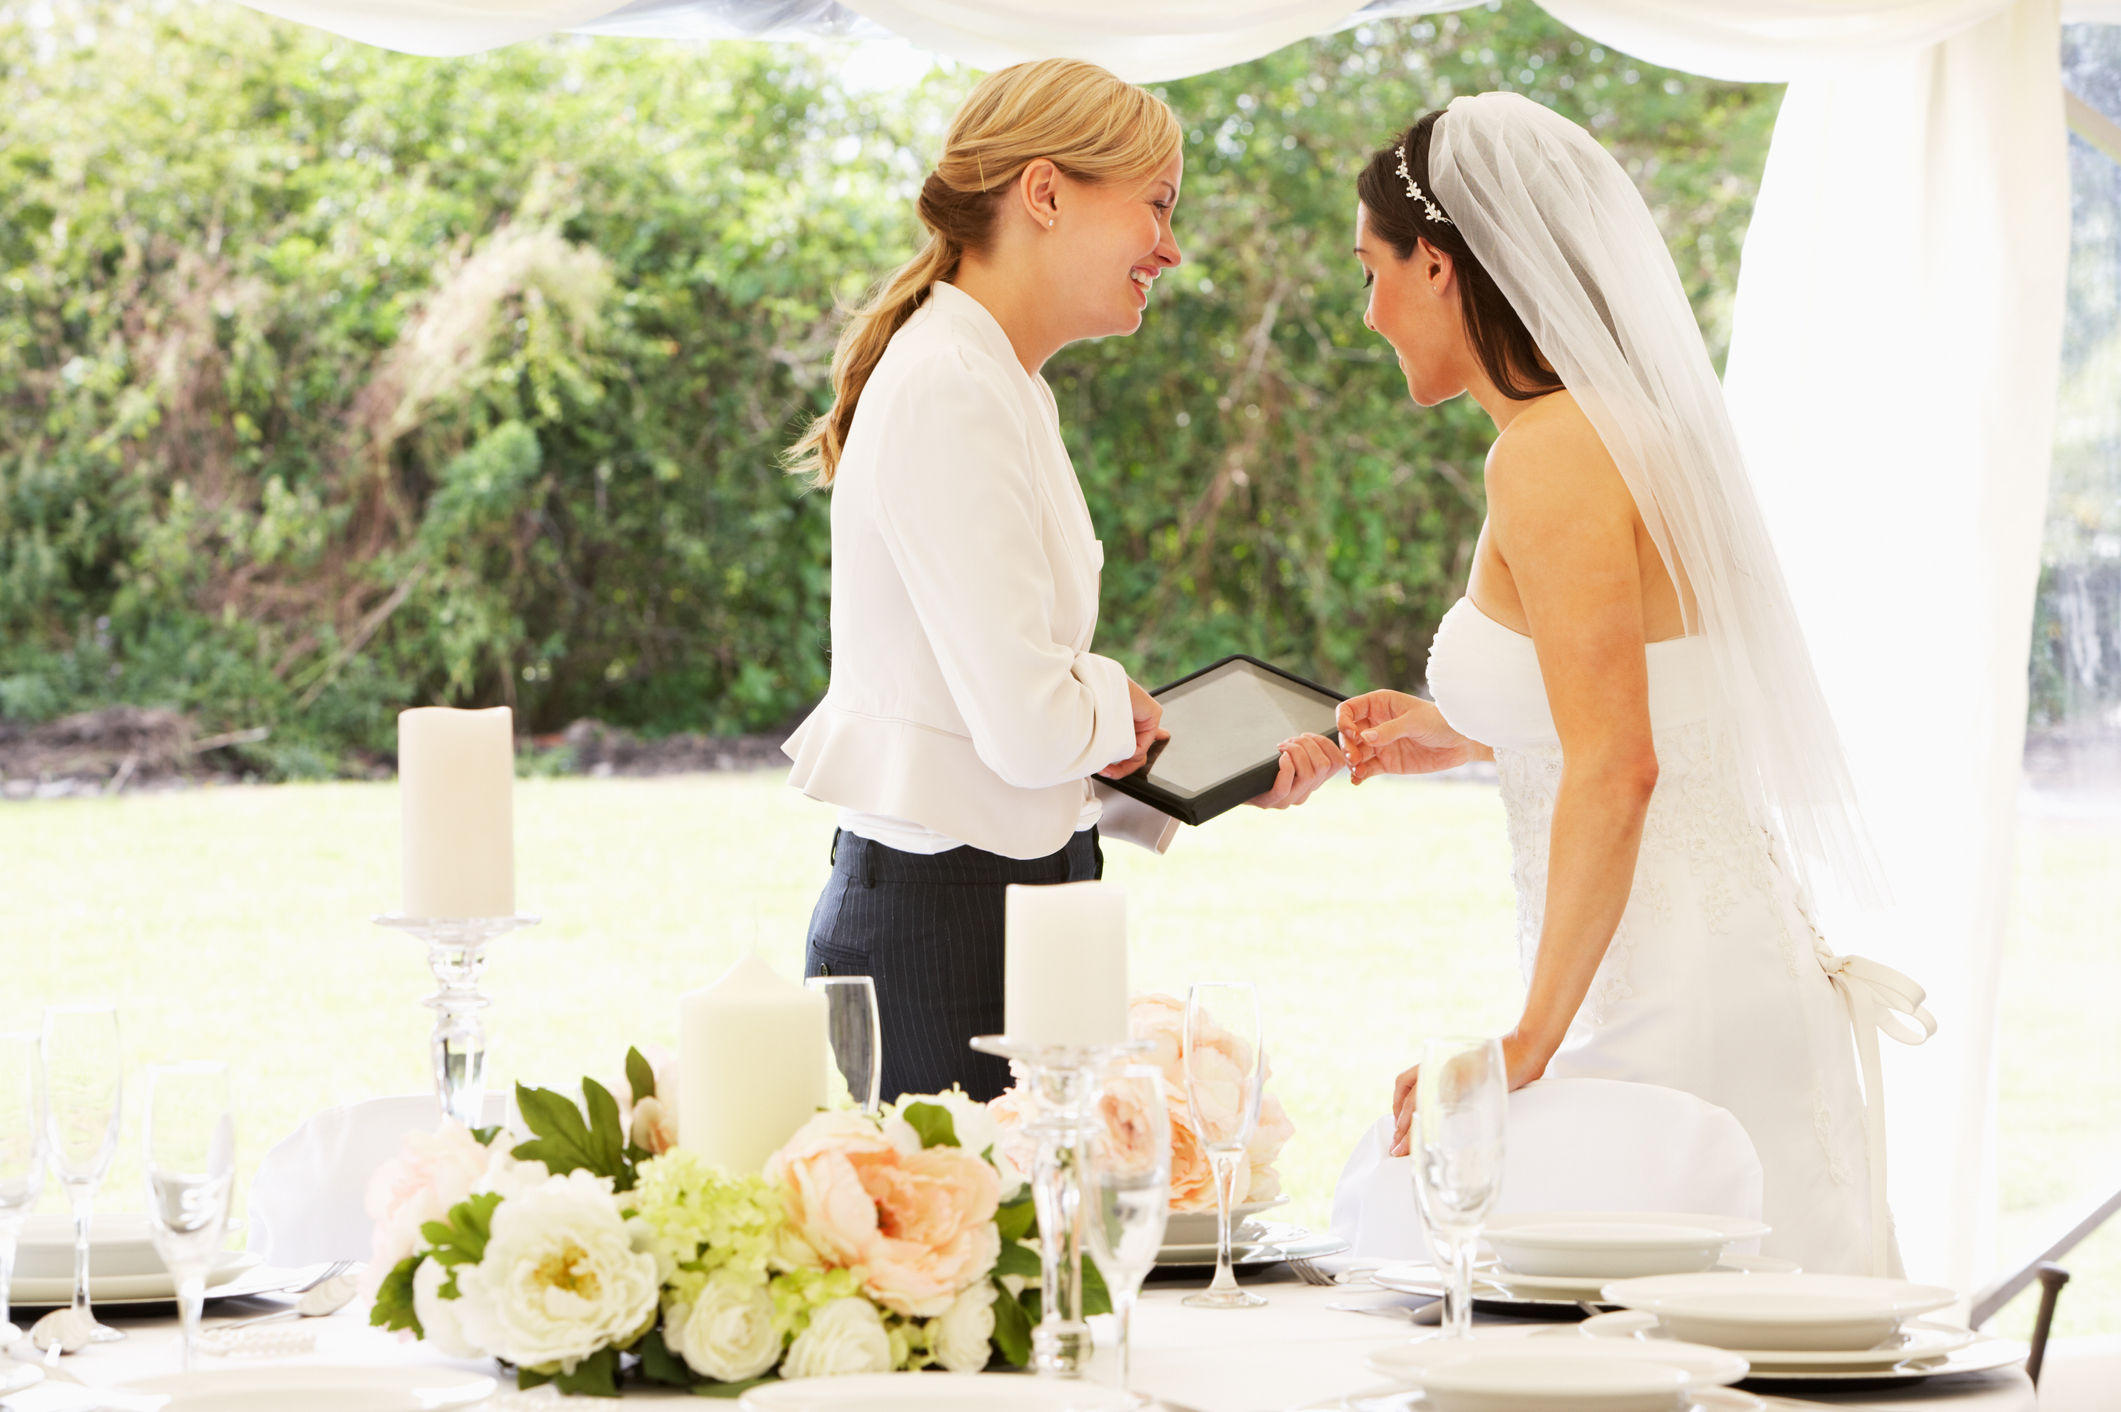 Should You Tip Your Wedding Planner?